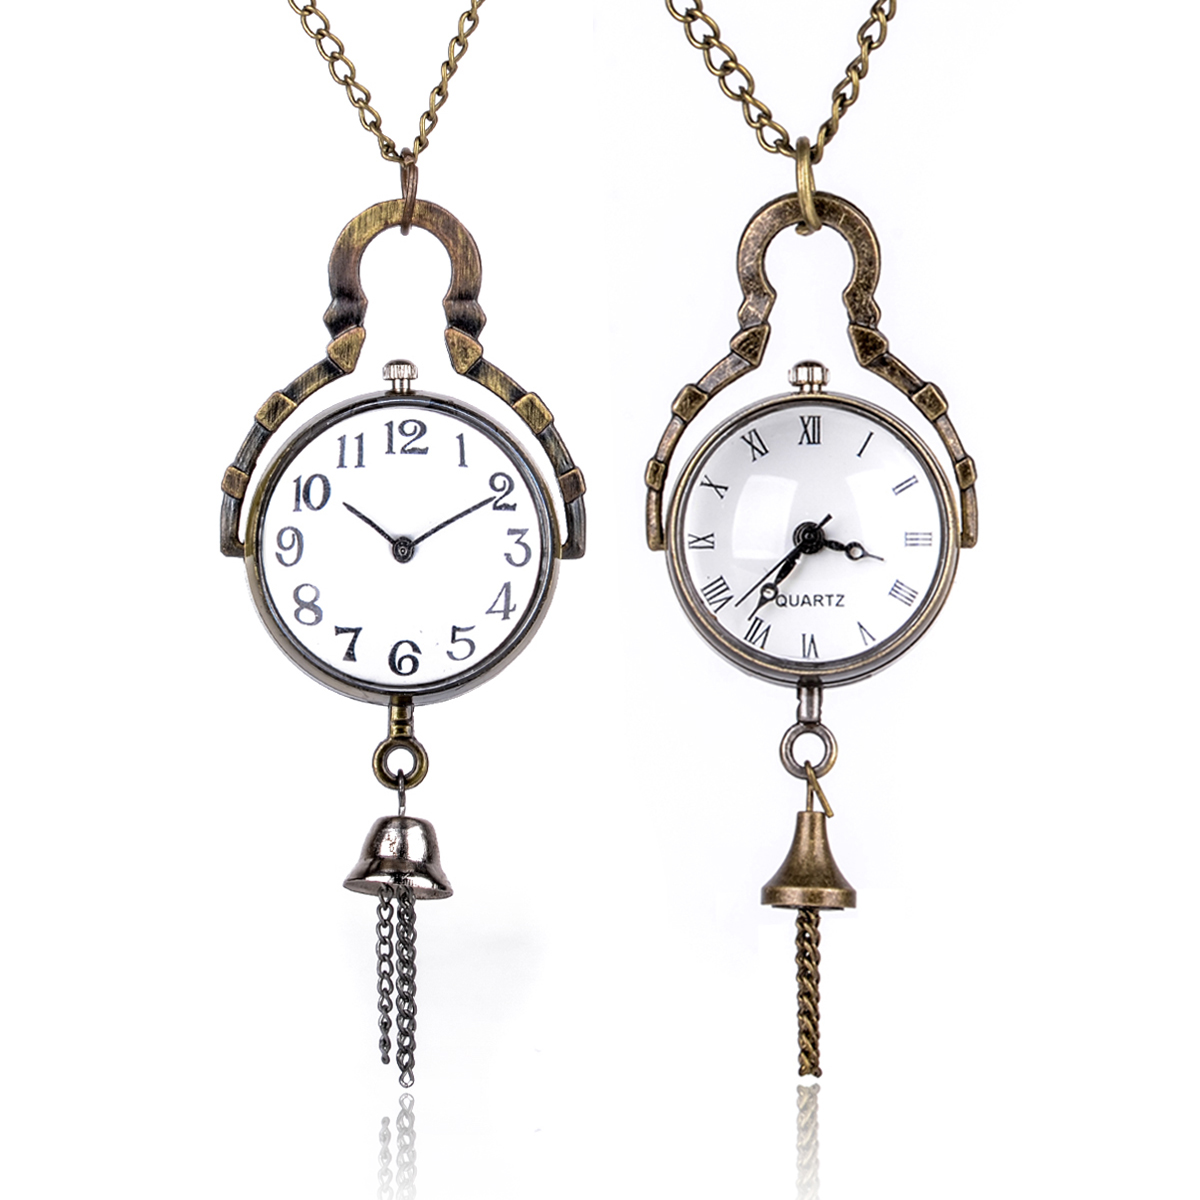 Antique Bronze Glass Ball Bull Eye Quartz Pocket Watch With Necklace Steampunk Men Women Roman/Arabic Numbers Pendant Fob Gift tactical 3 5 14x44 rifle scope front retical scope for hunting shooting cl1 0226